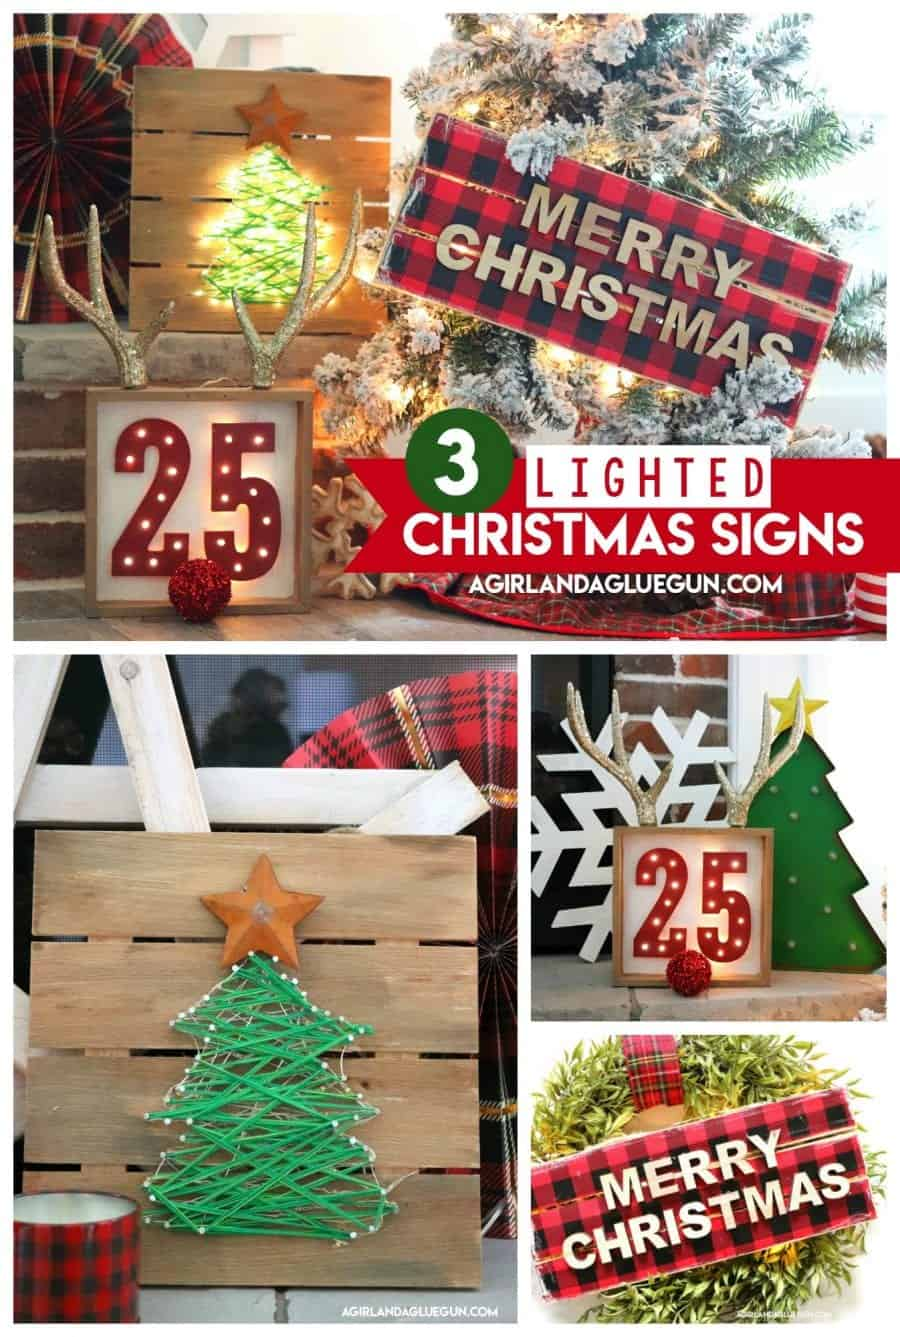 Hobby Lobby Christmas Wreaths.Lighted Christmas Sign 3 Ways A Girl And A Glue Gun